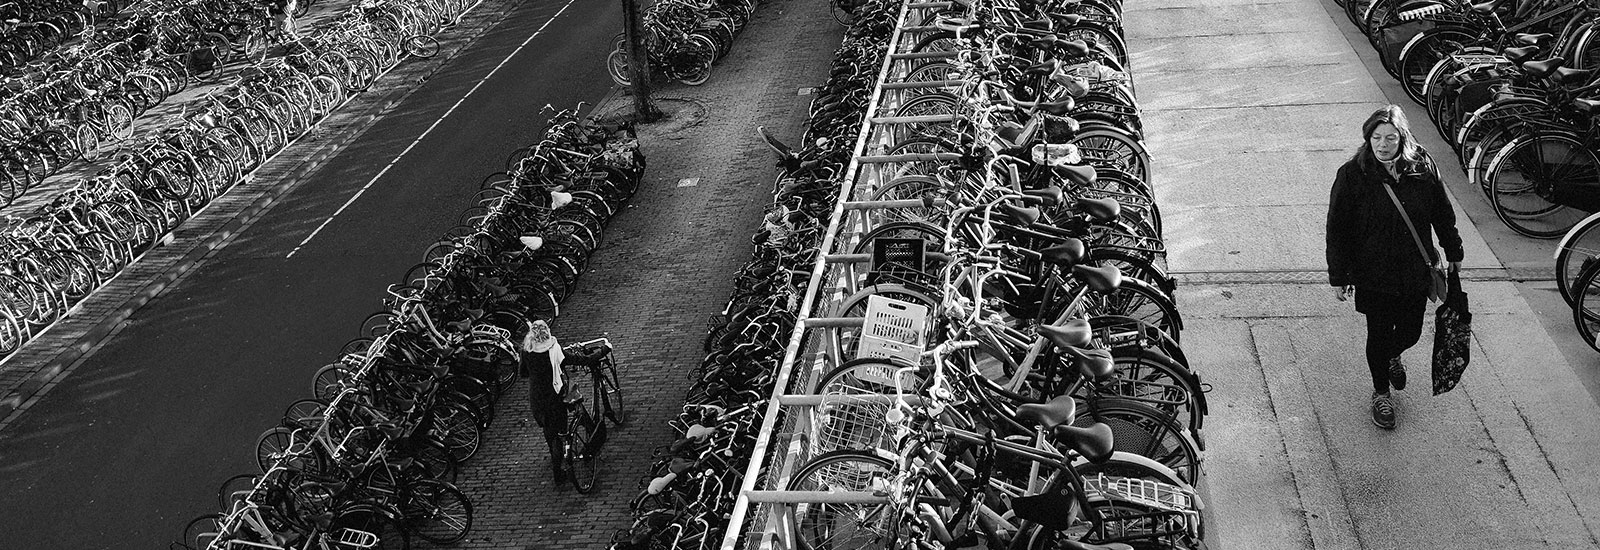 The Top Ten Bicycles of Amsterdam